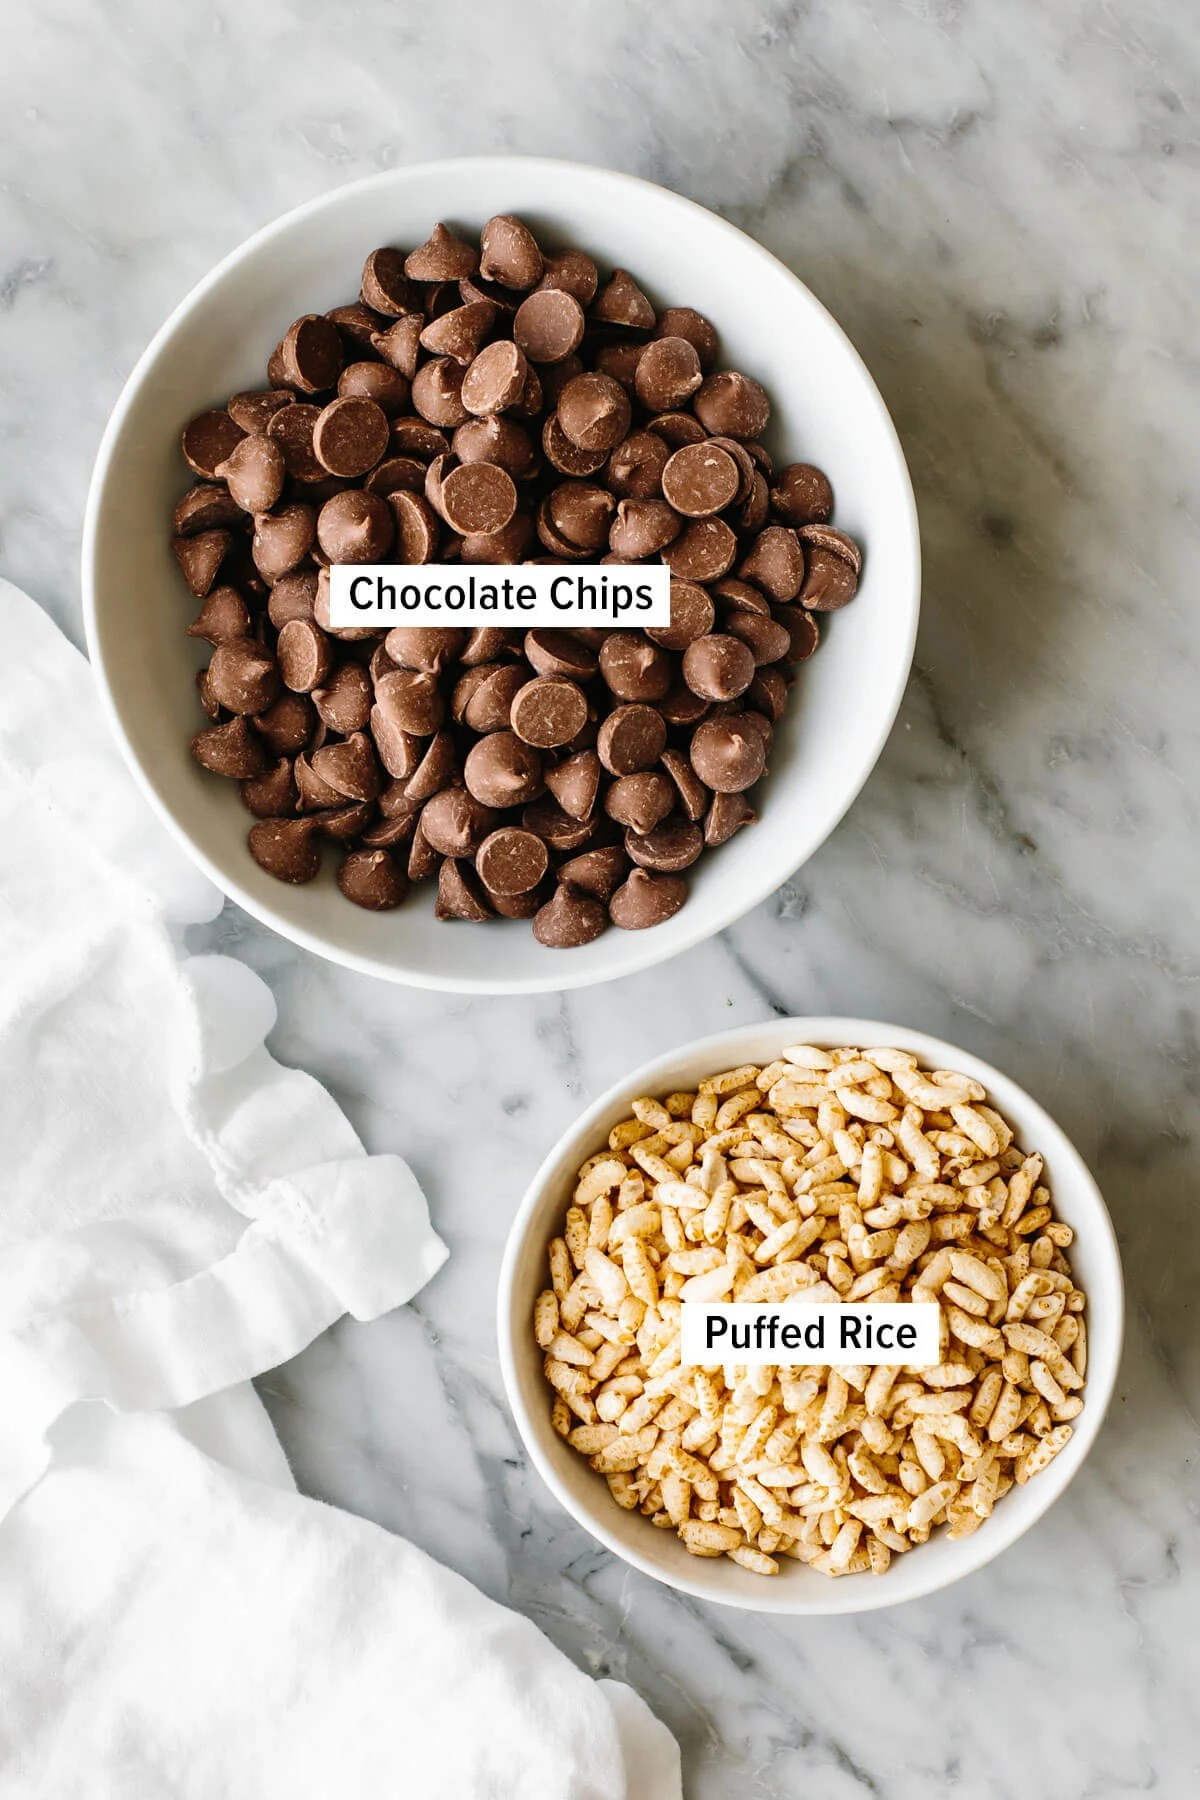 Ingredients for chocolate crunch bars on a table.